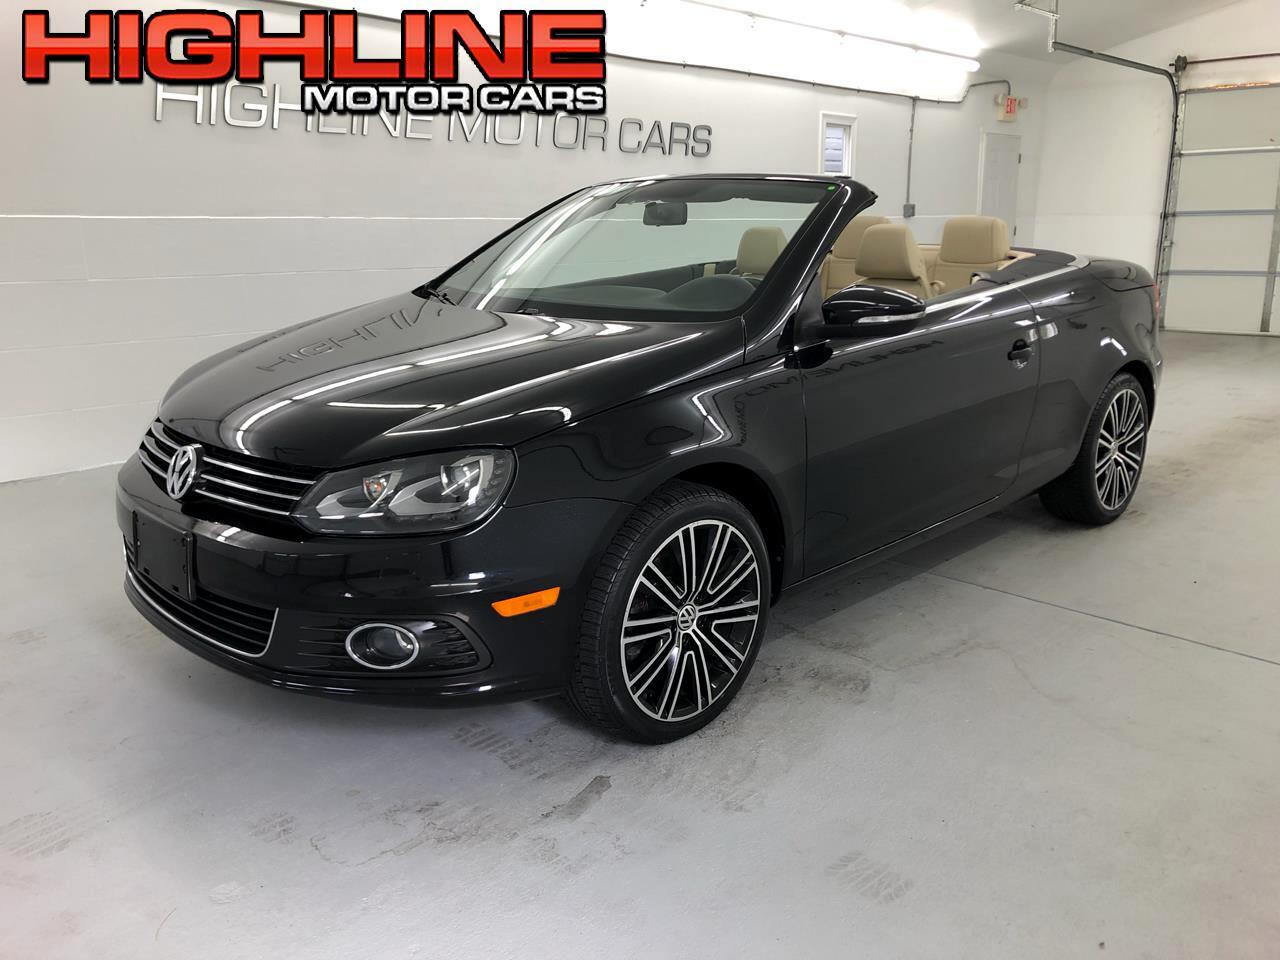 Volkswagen Eos 2014 for Sale in Vincentown, NJ